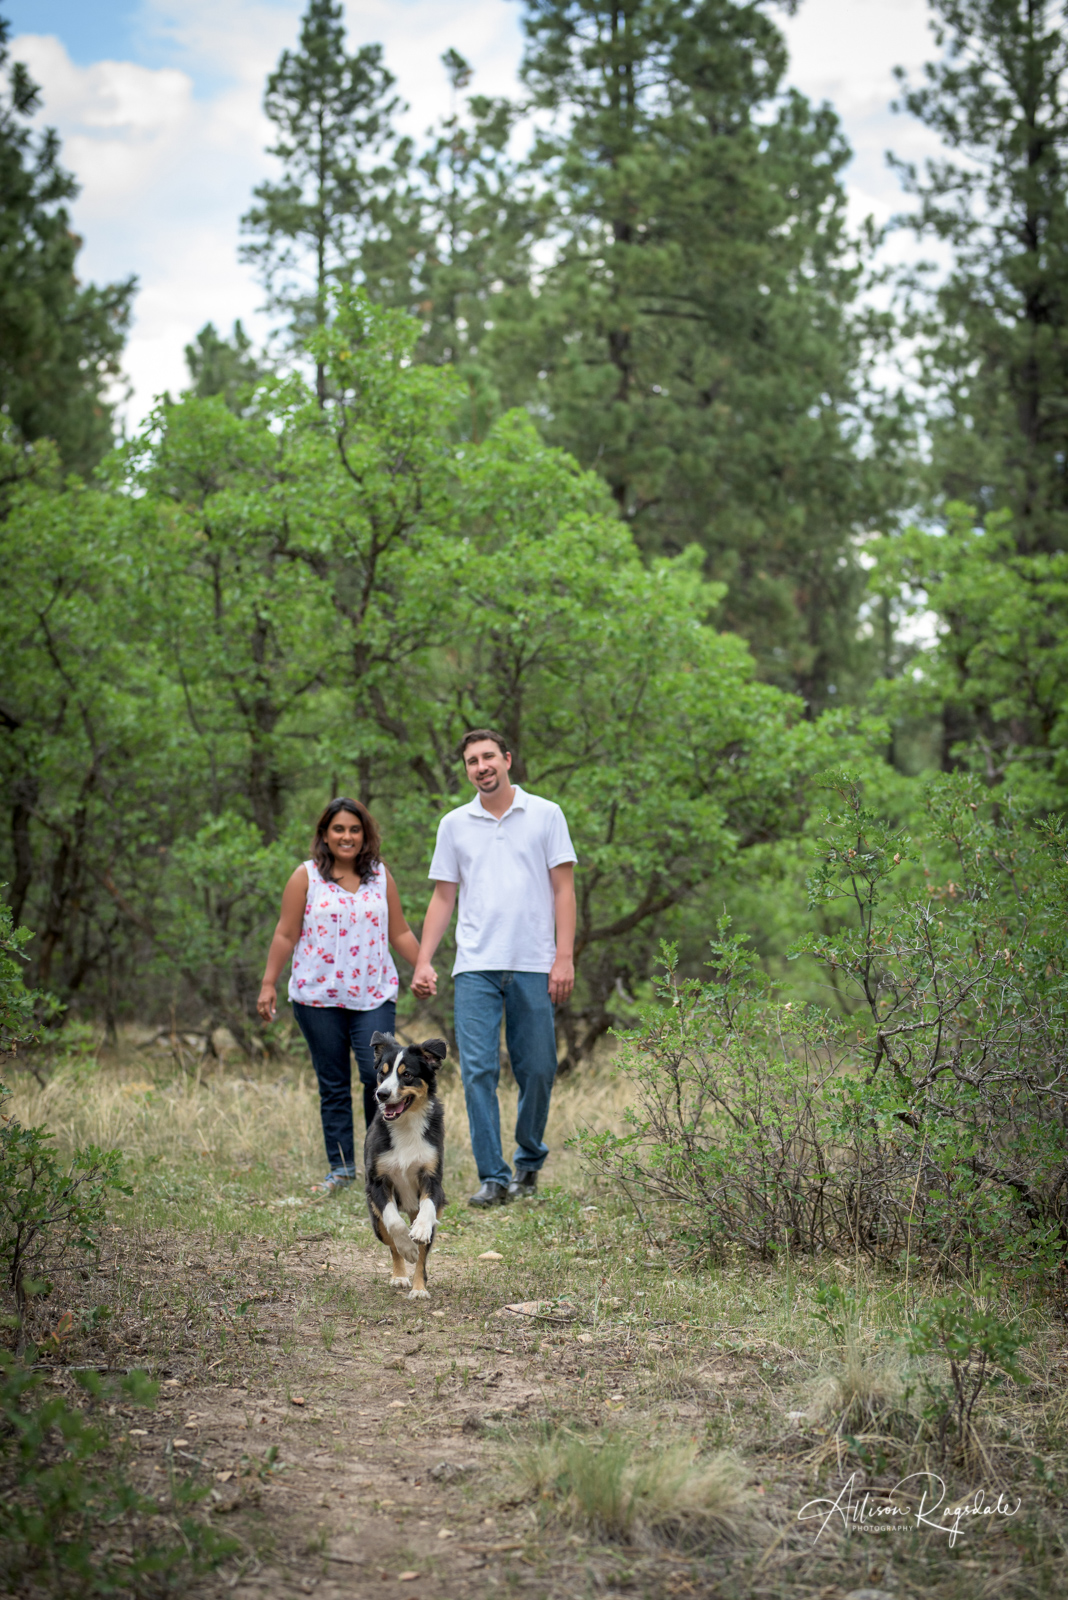 family portraits with dog by Allison Ragsdale Photography